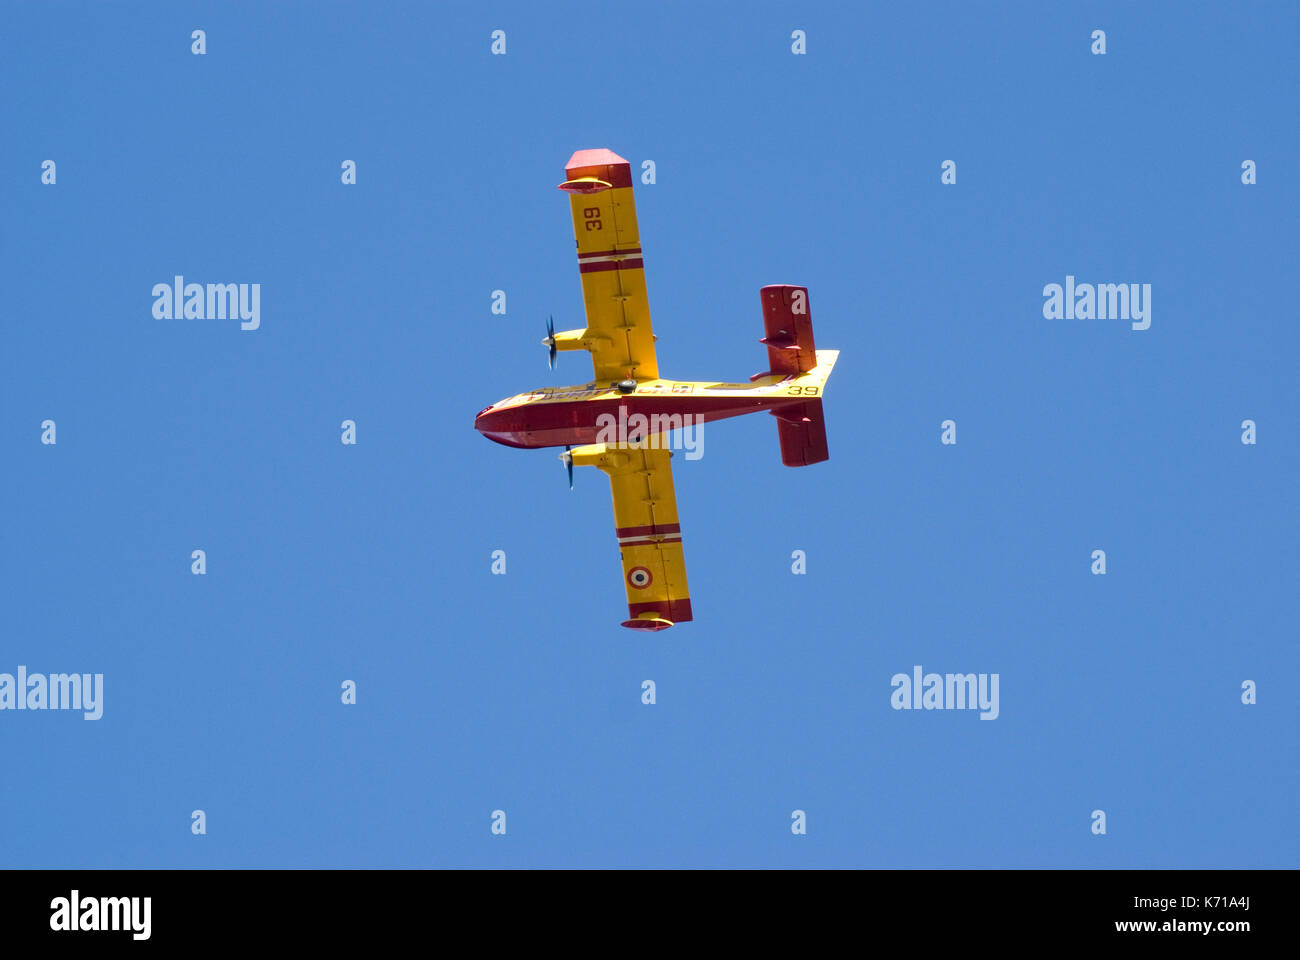 Canadair CL-415 of french aerial firefighting task force in operation during forest fire - Stock Image